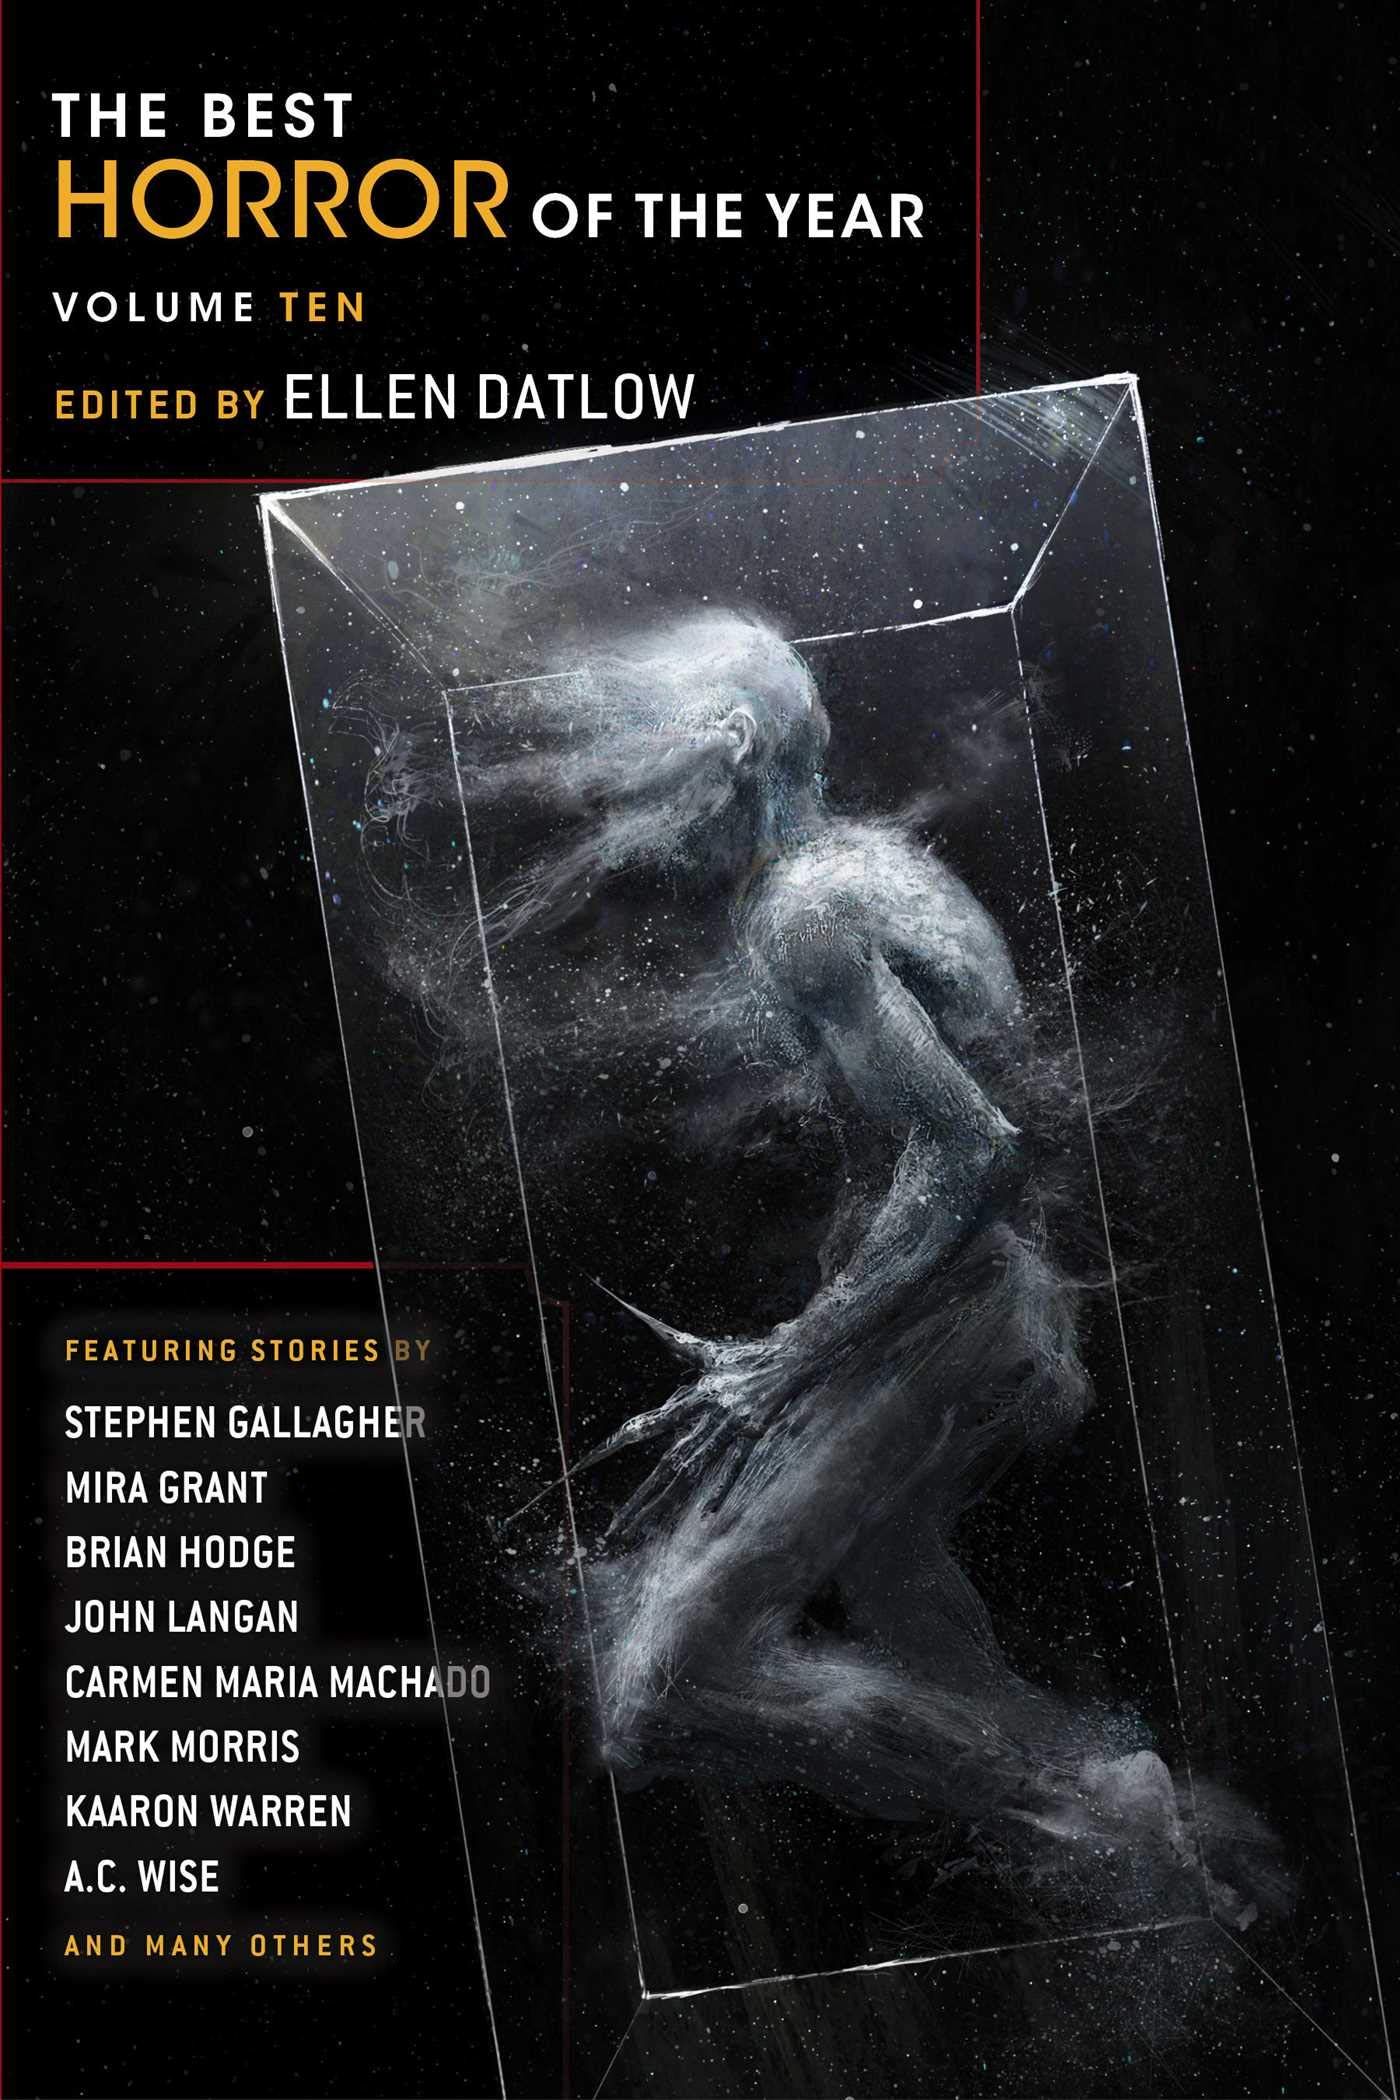 Best Horror of the Year Volume Ten: Amazon.es: Ellen Datlow: Libros en idiomas extranjeros